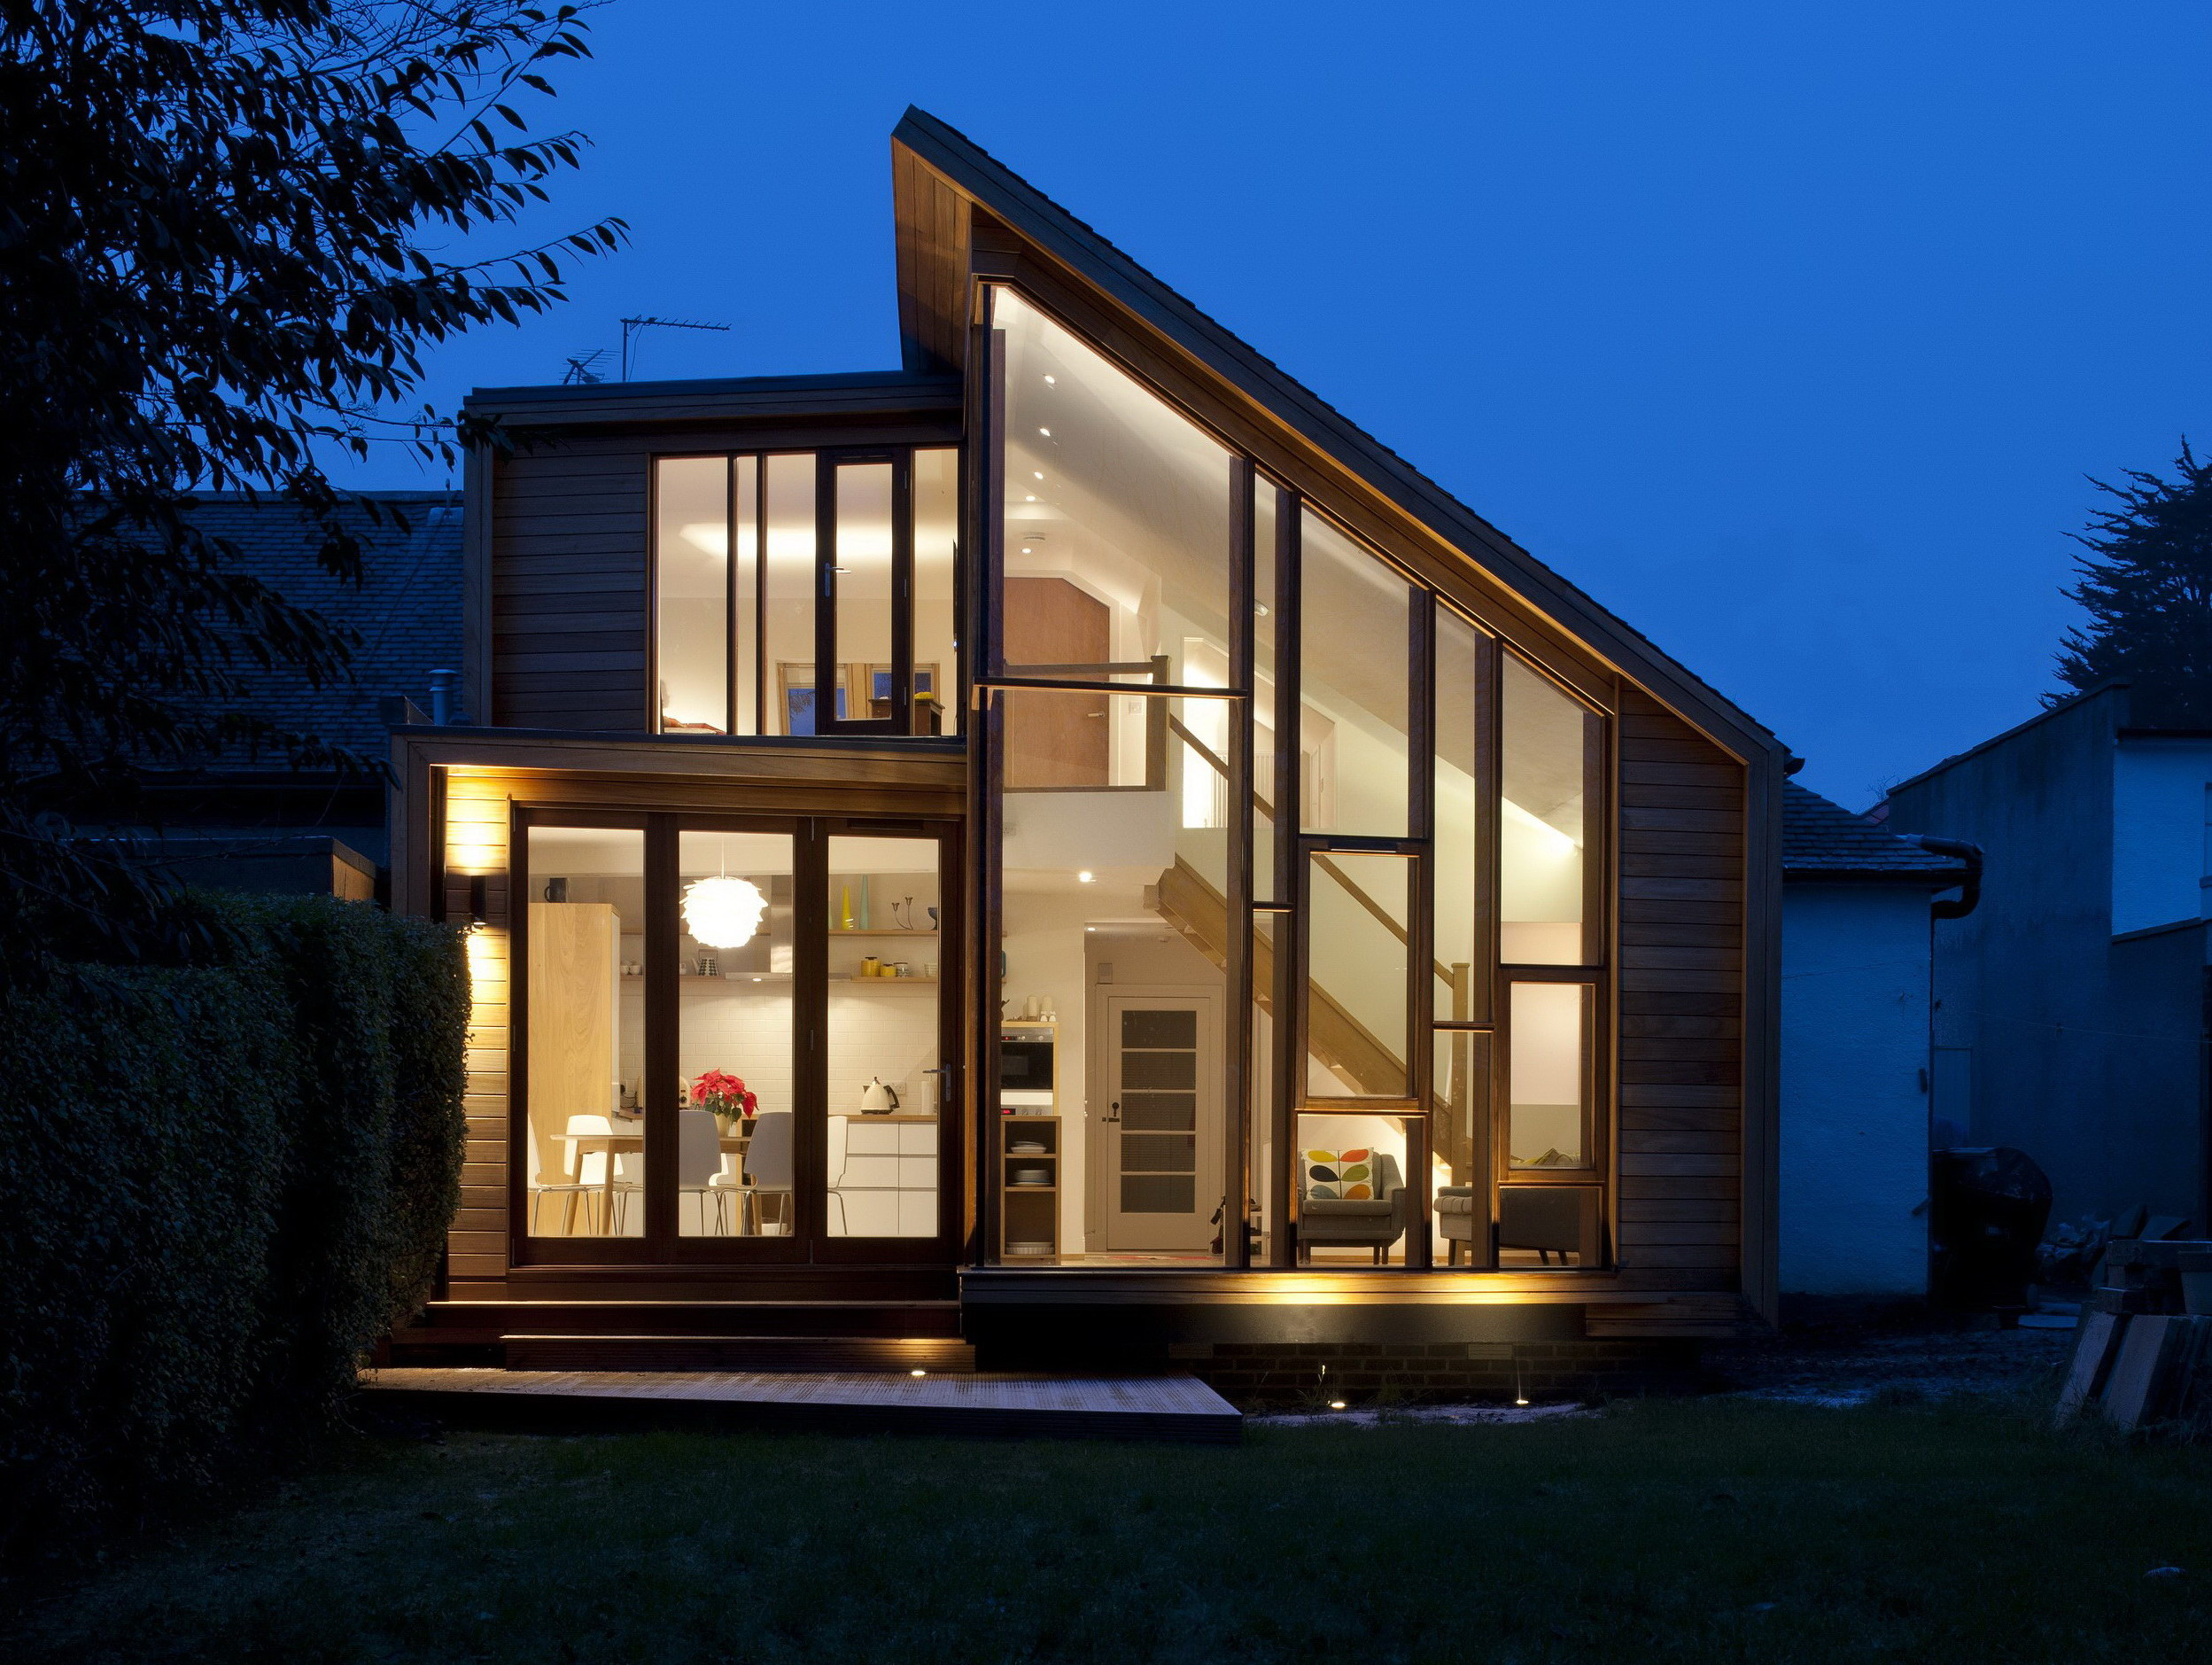 Solen Vinklar – Family House Extension by David Blaikie Architects